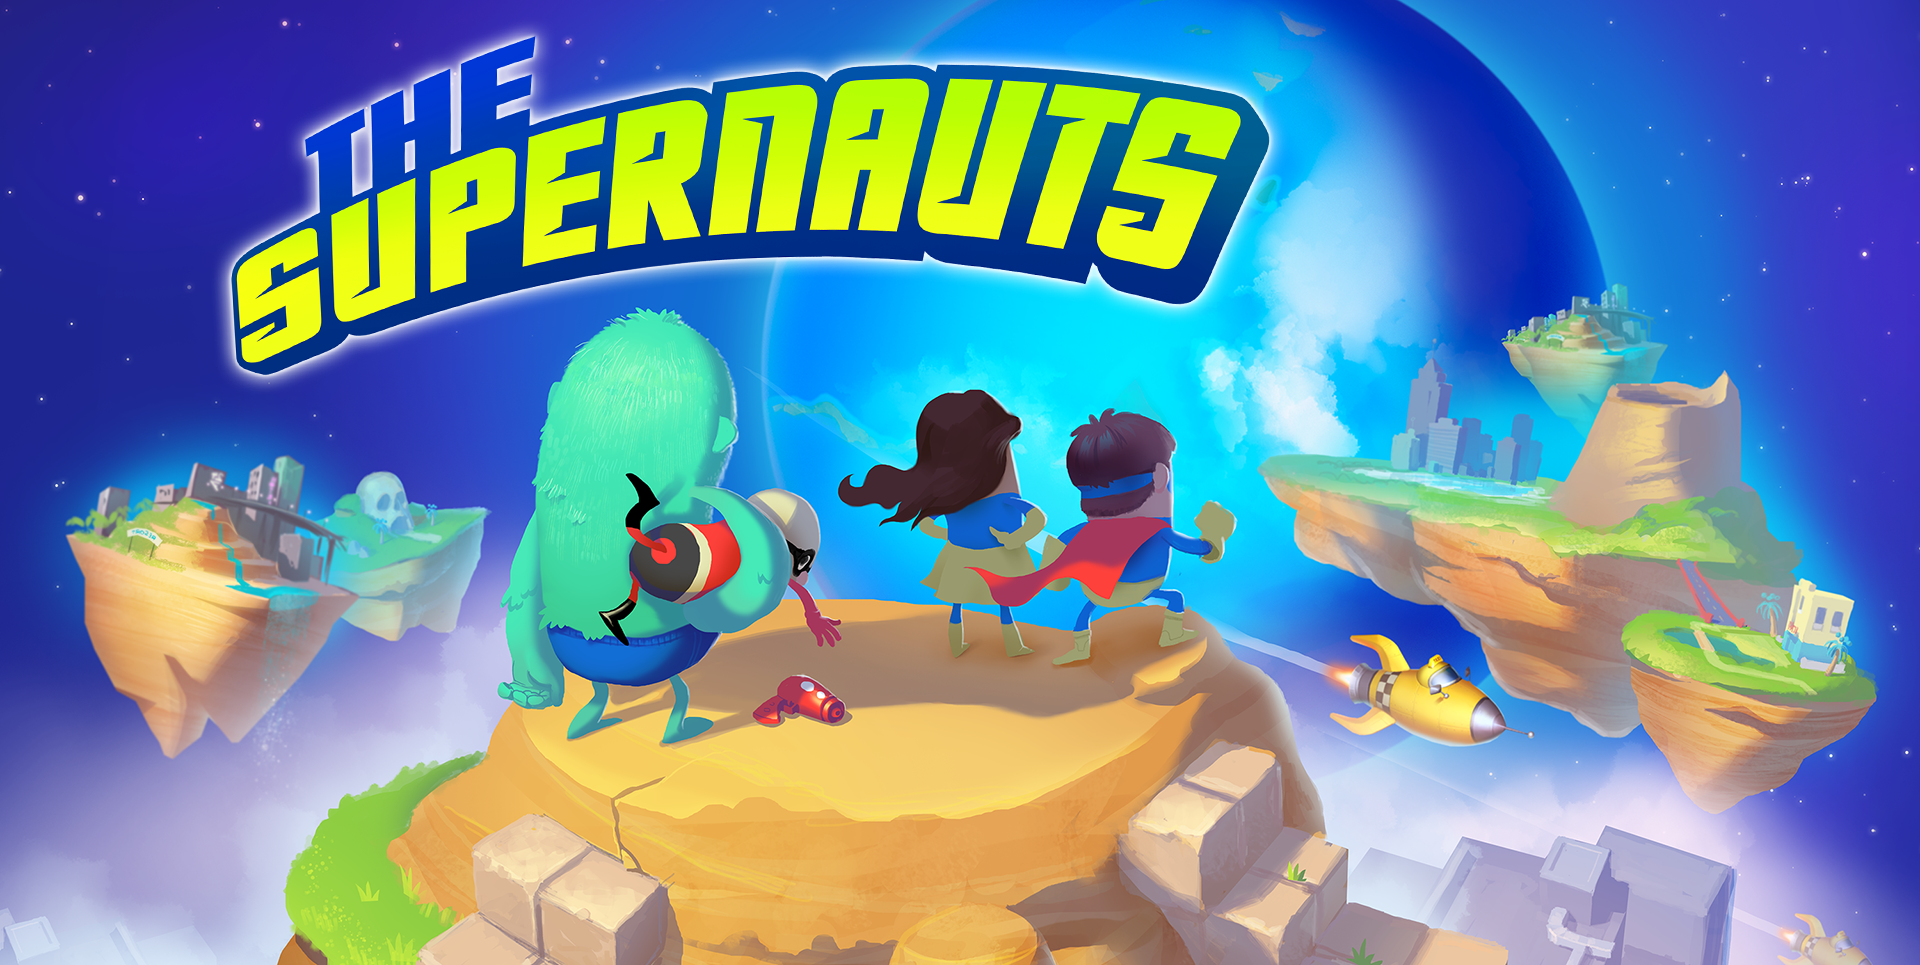 the_supernauts_title_image.png